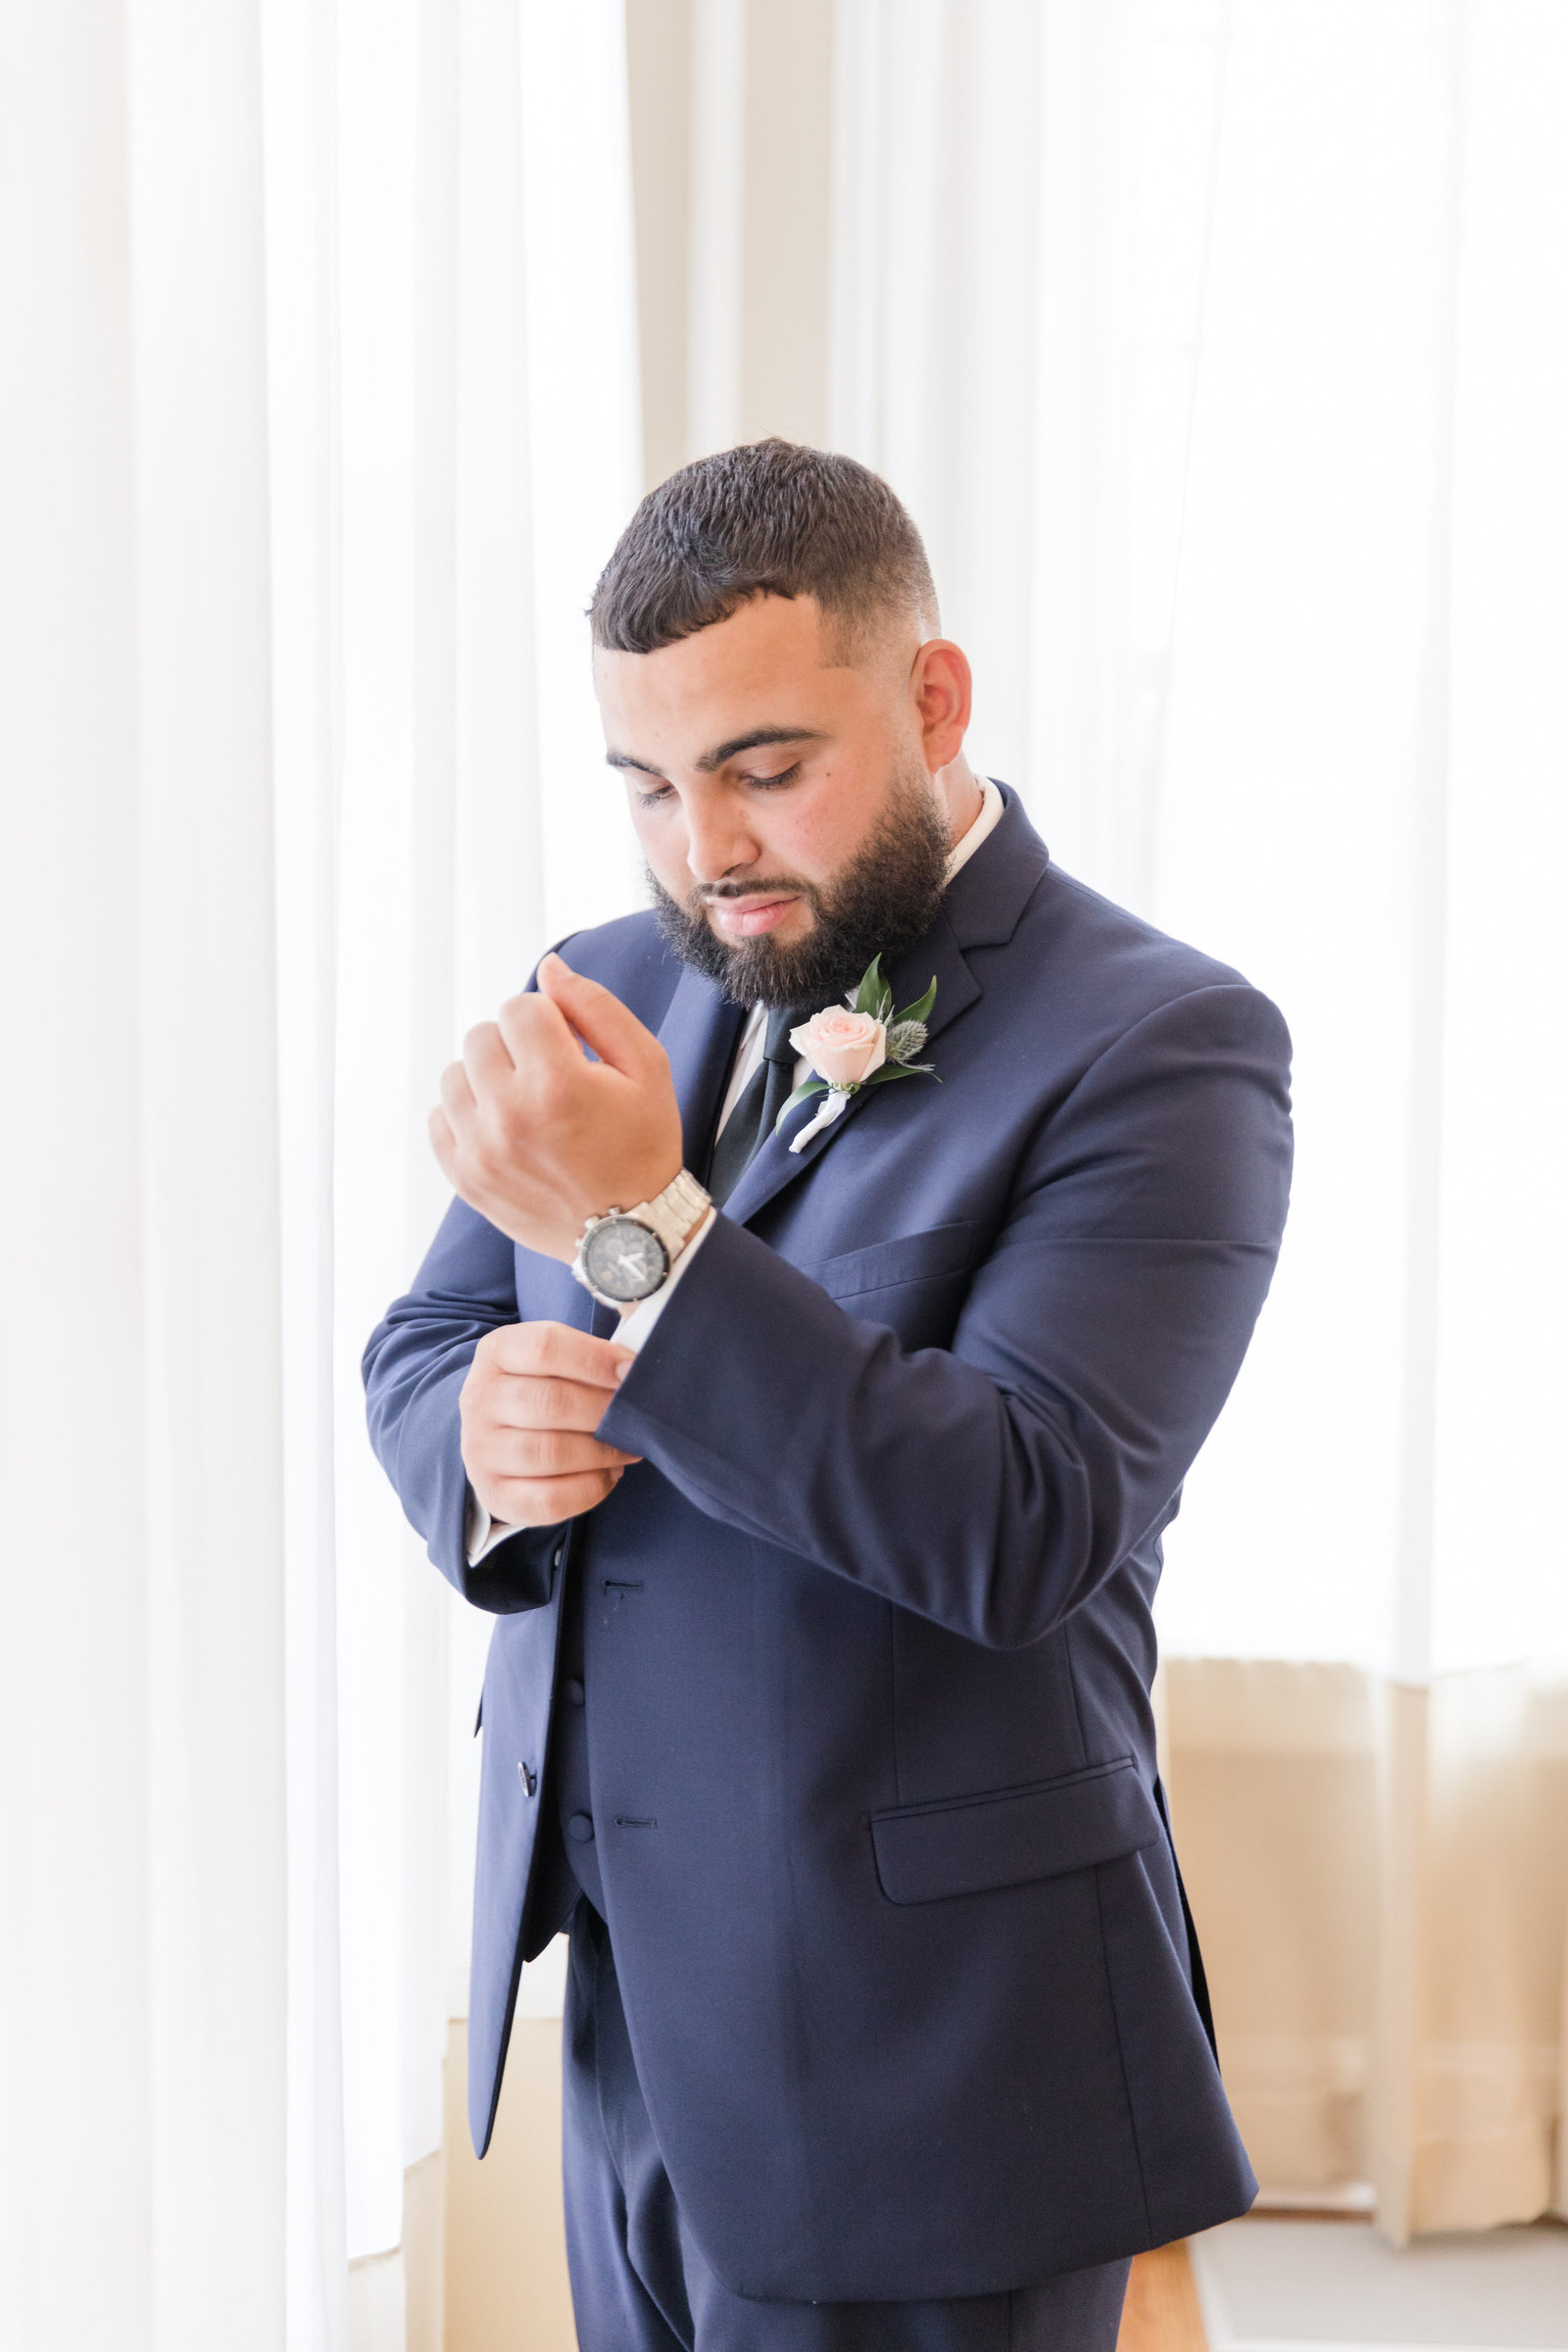 Jennifer_B_Photography-Pinehurst_Club-Pinehurst_NC-Wedding_Day-Caleb___Miranda-JB_Favs-2019-0089